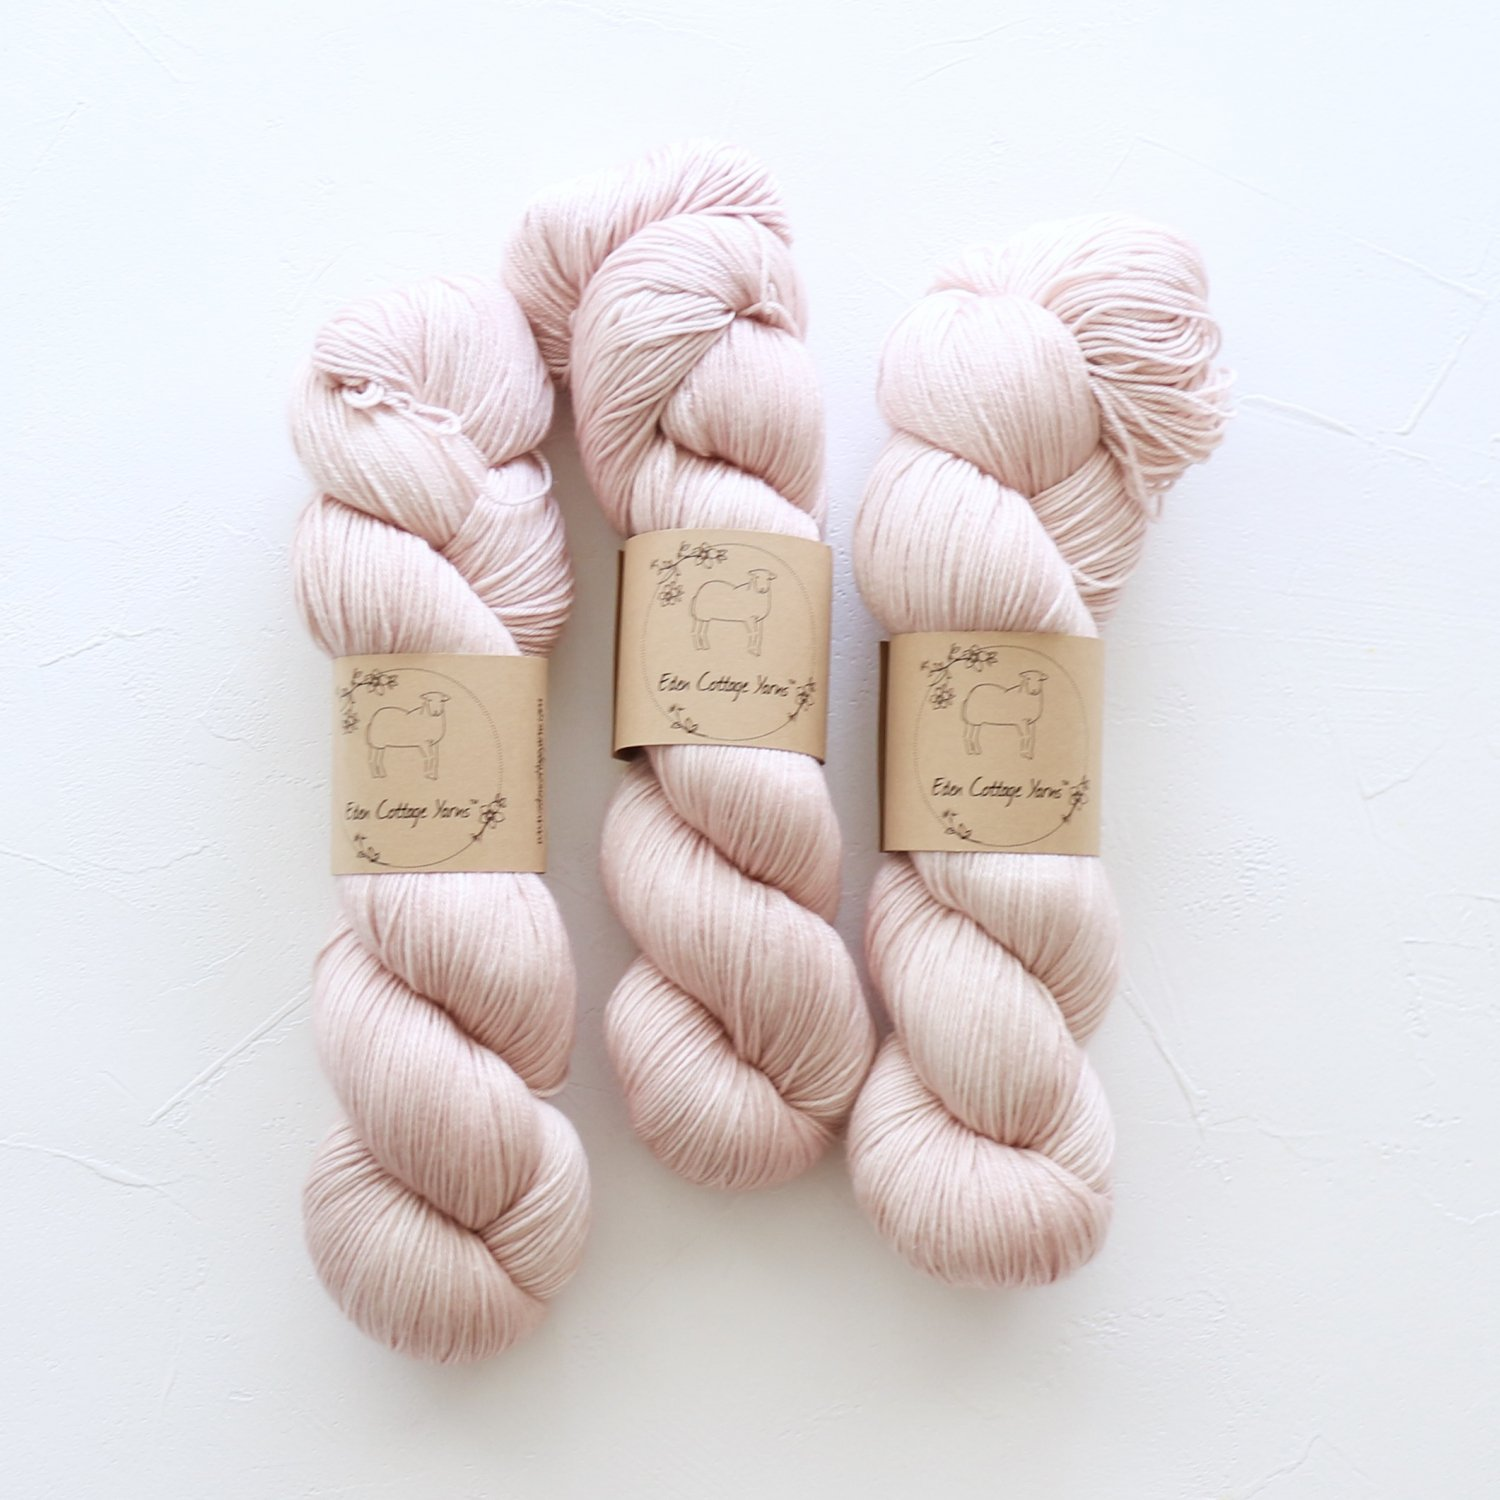 【Eden Cottage Yarns】<br>Titus 4ply<br>Stonecrop